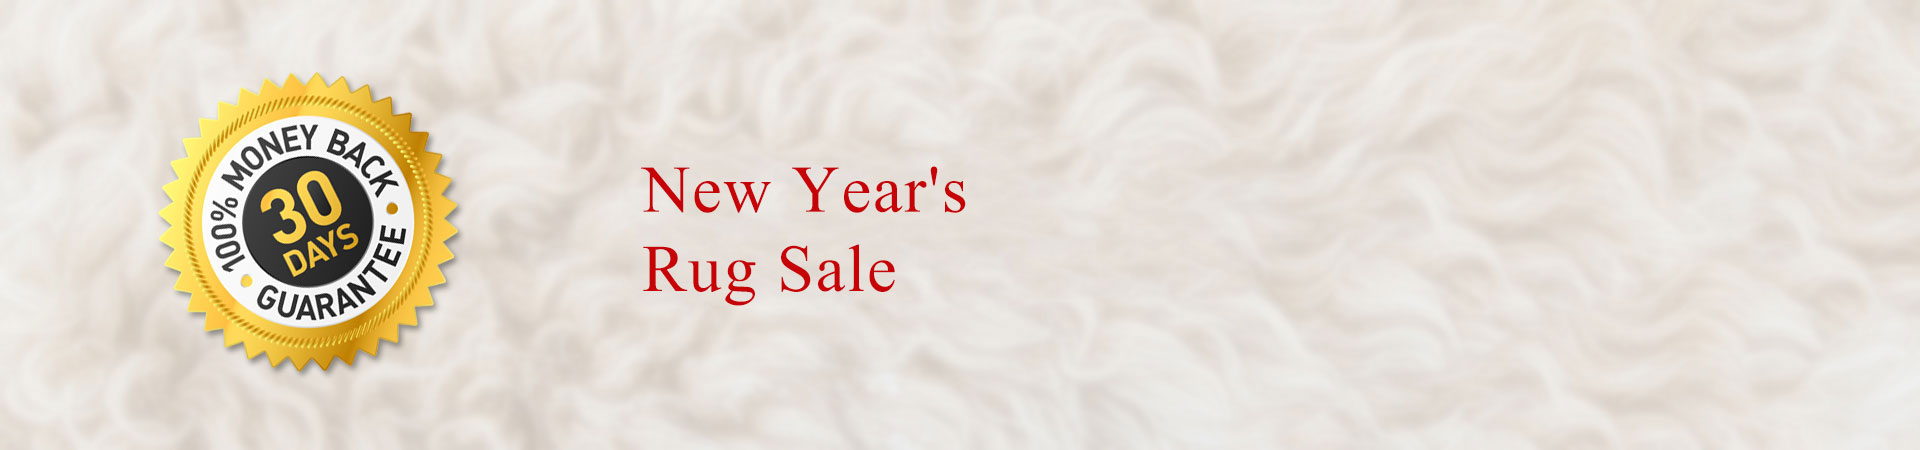 New Year's Rug Sale